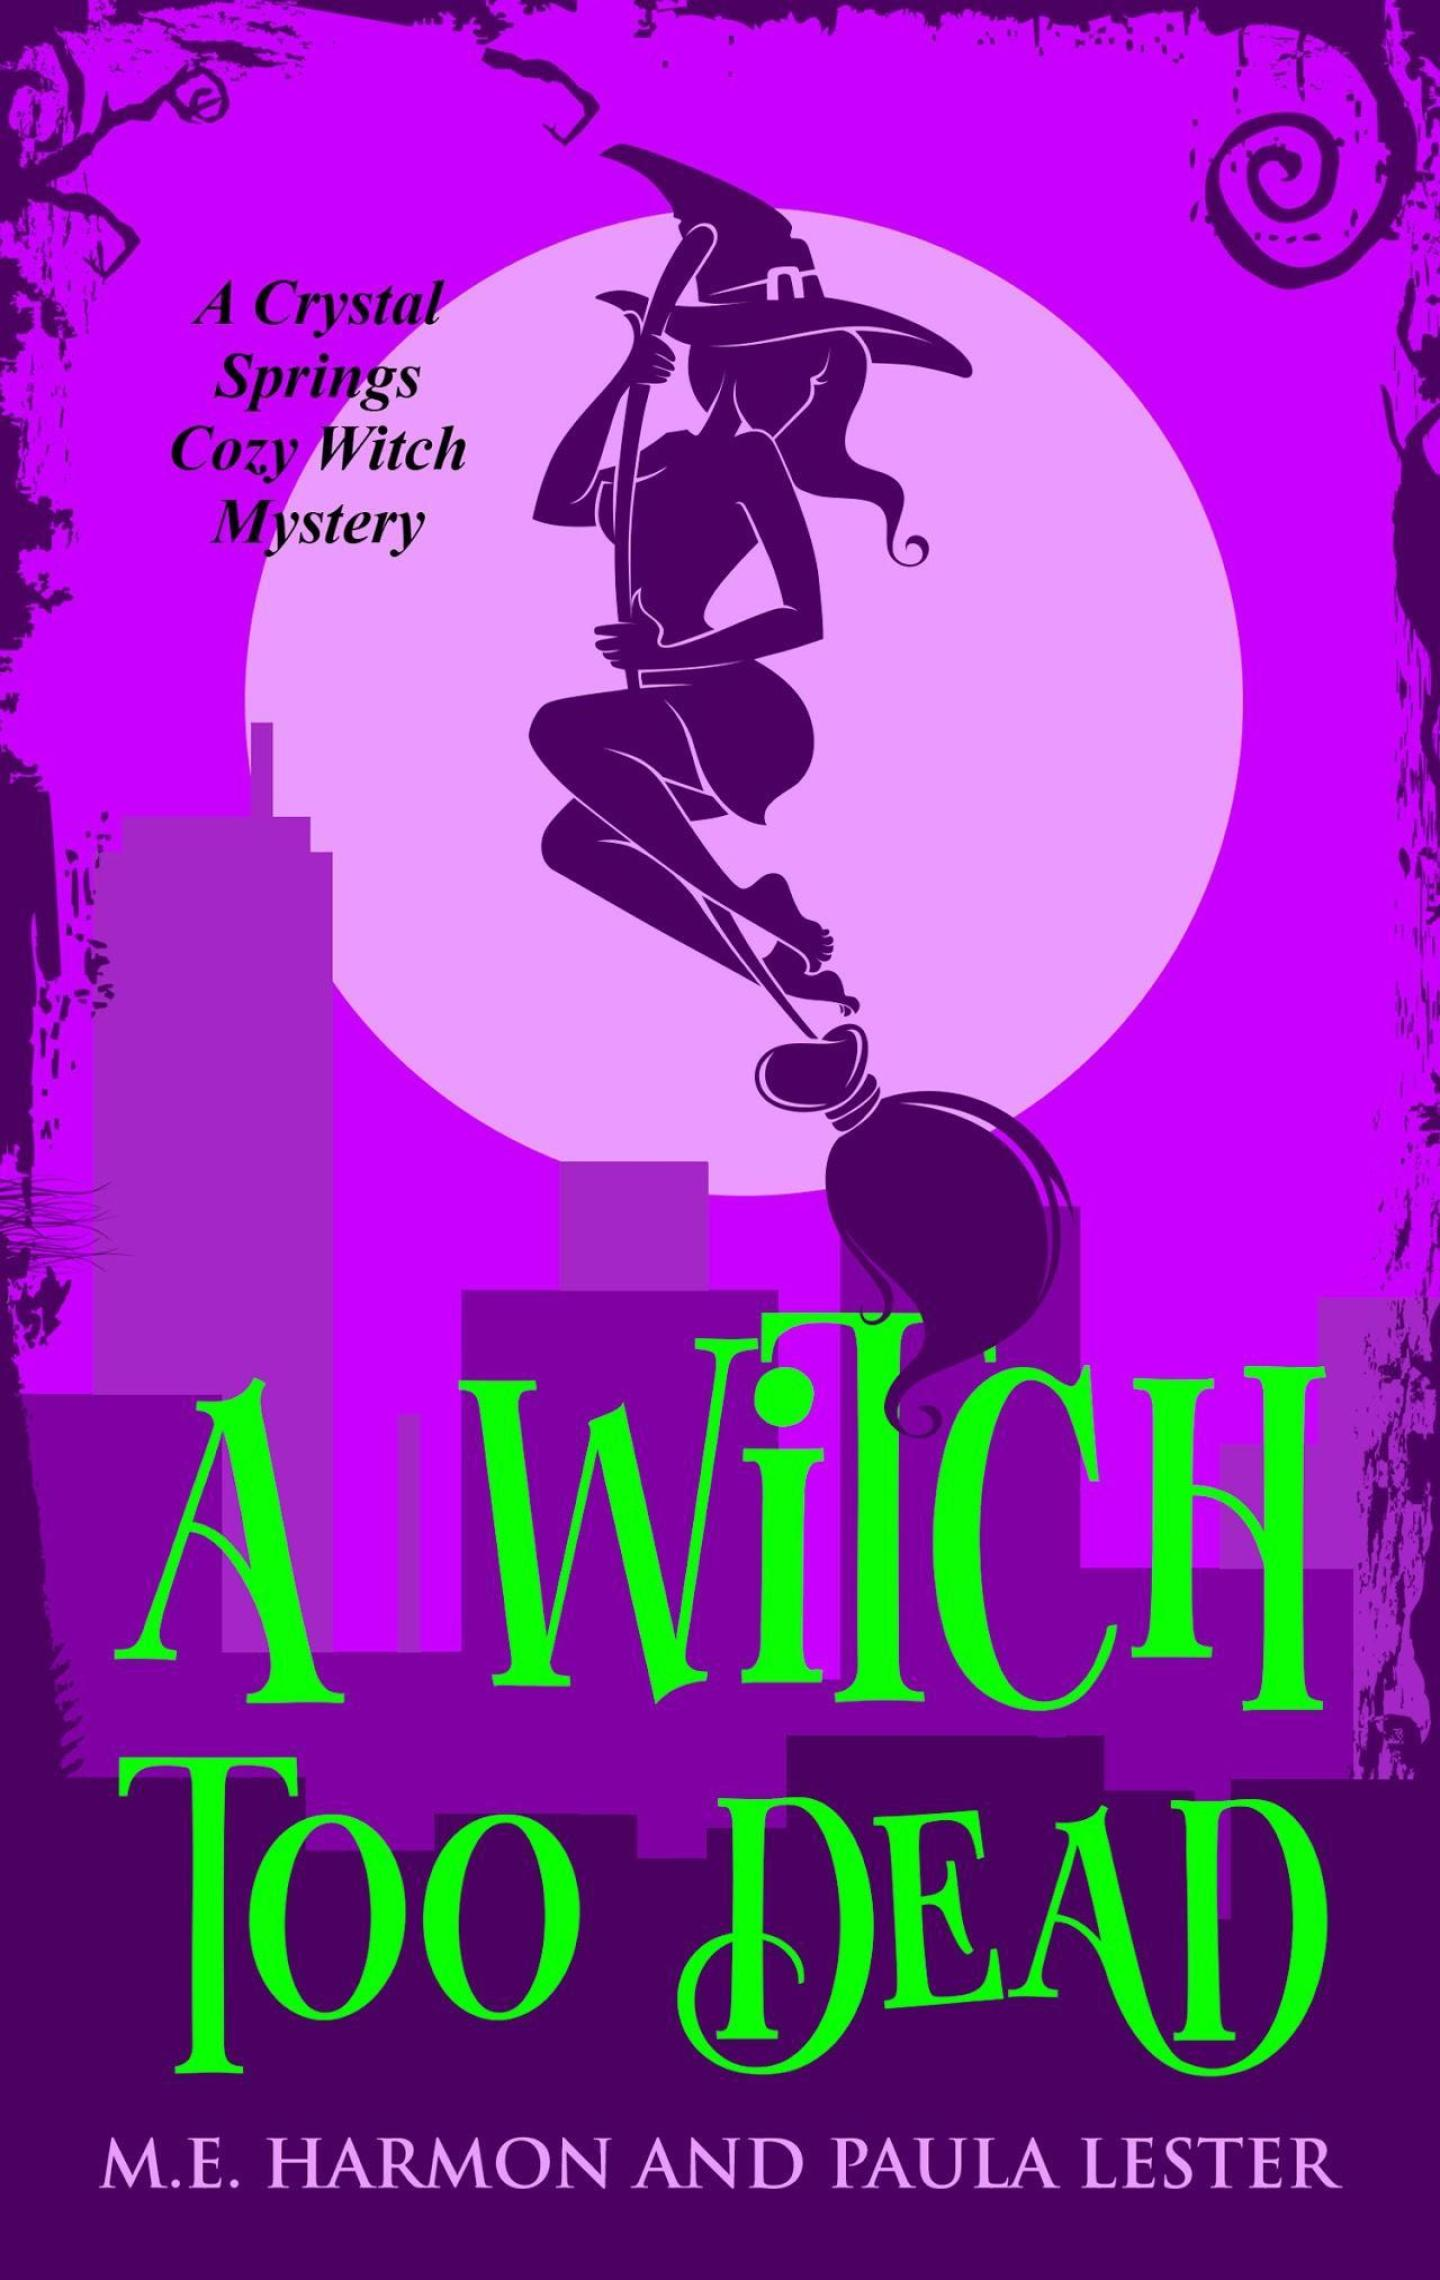 A Witch Too Dead (Crystal Springs 4)